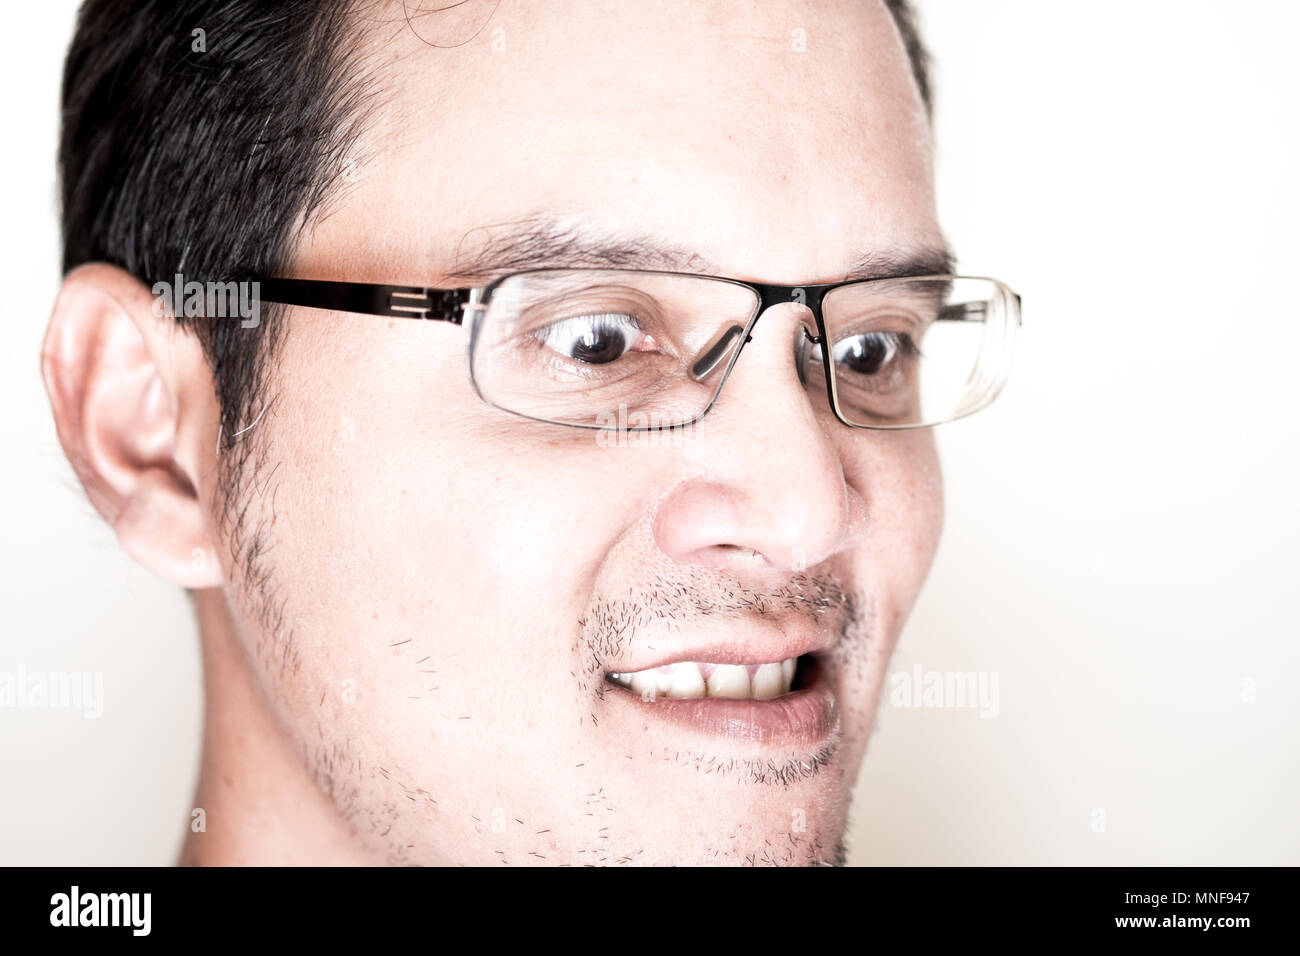 Face of Asian man with eyeglasses for near sighted feeling very angry and mad. His eyes is wided open and gritting his teeth. - Stock Image